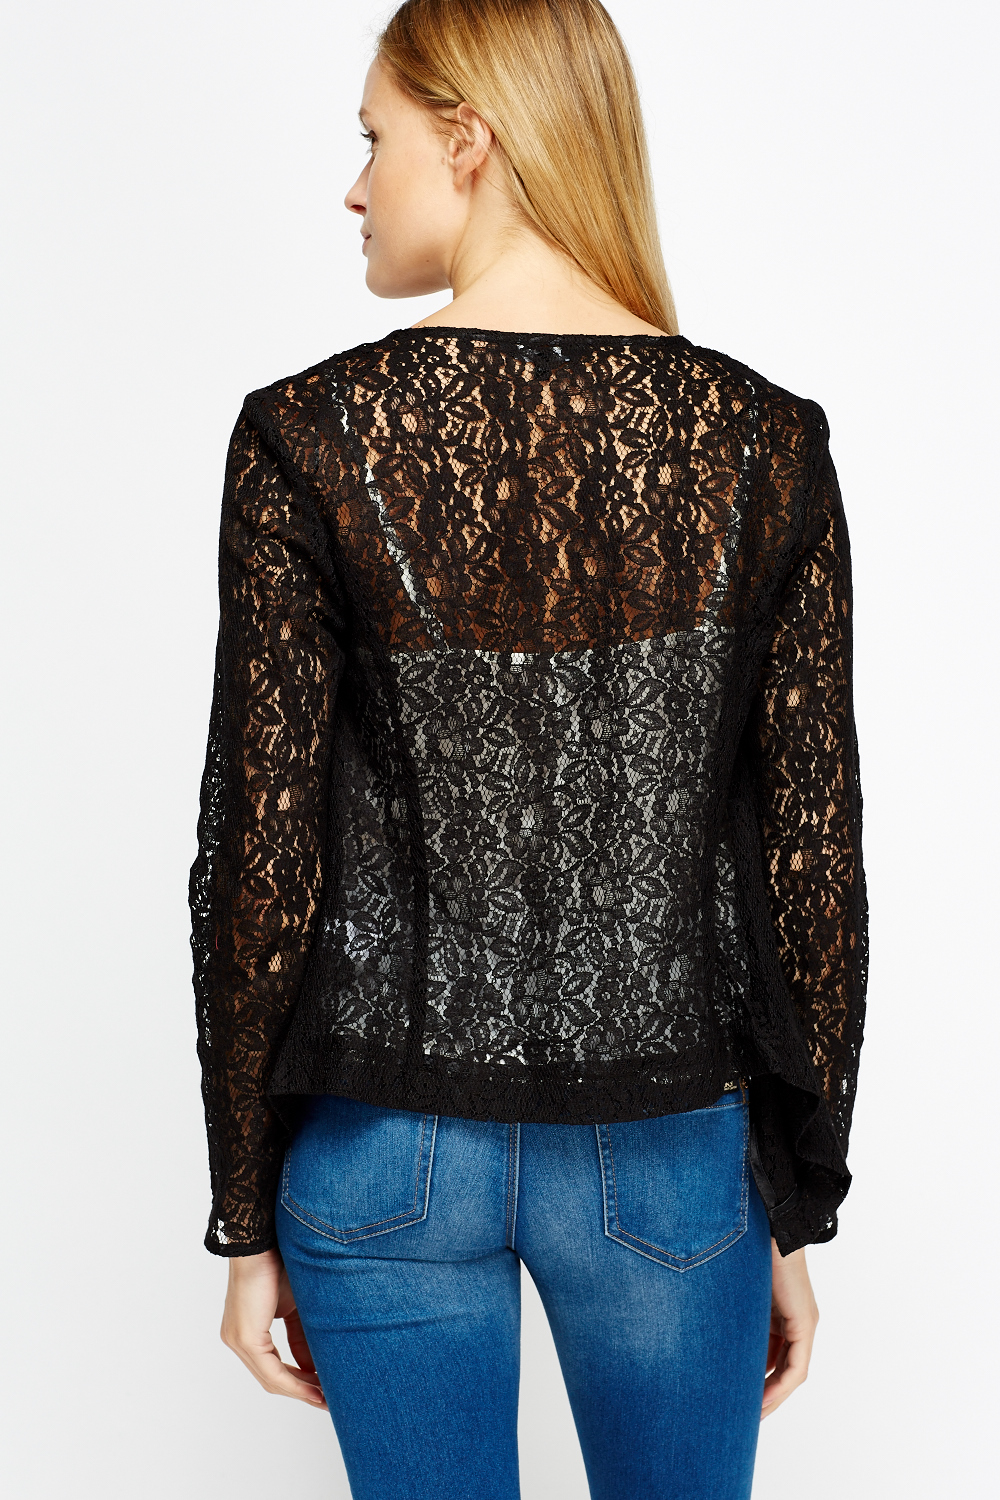 Lace Waterfall Cardigan - Just £5